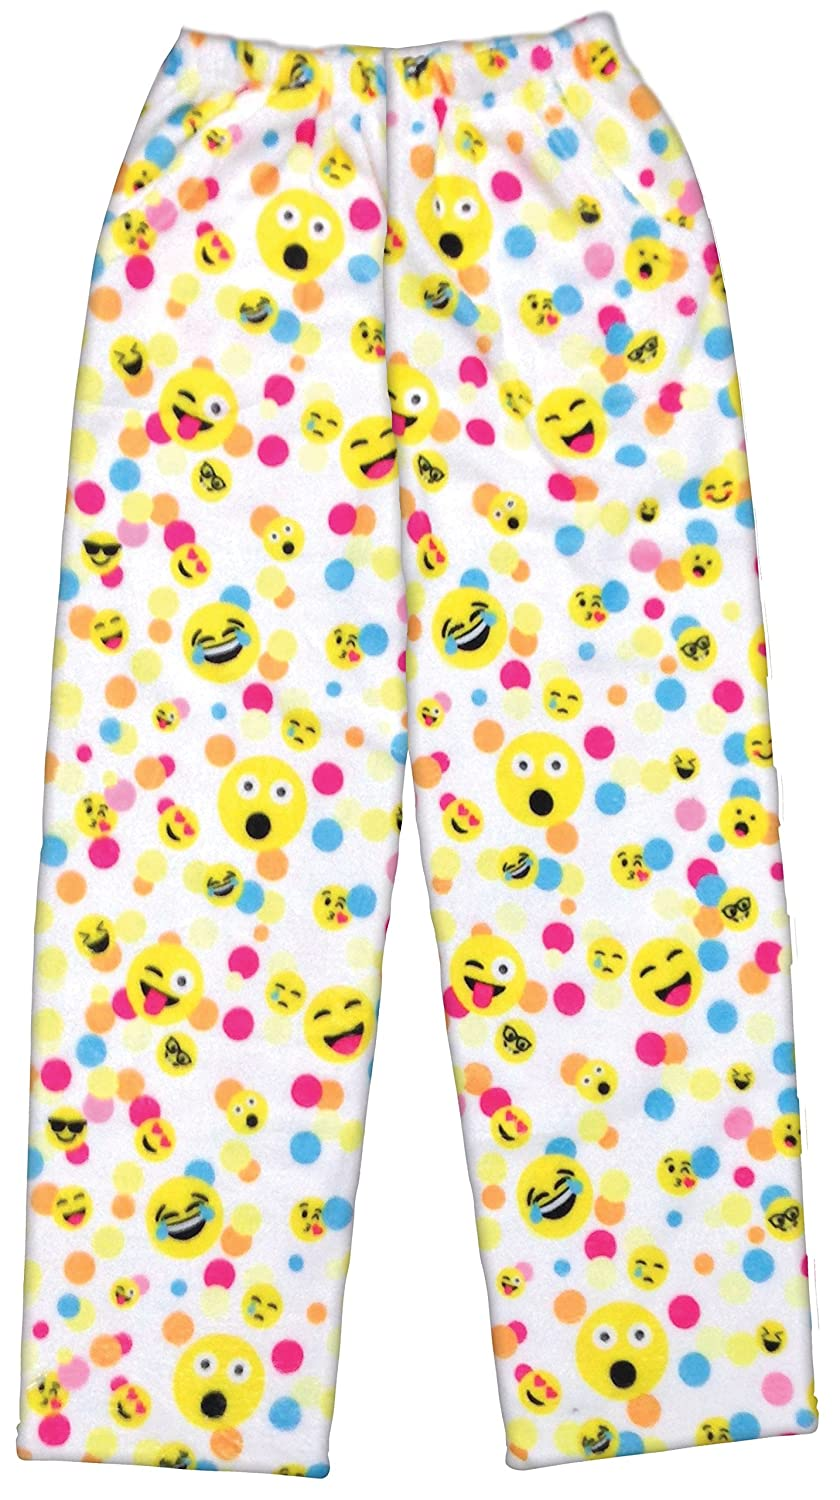 iscream Big Girls Silky Soft Plush Fleece Pants - Emoji Besties Collection The Mines Press Inc.